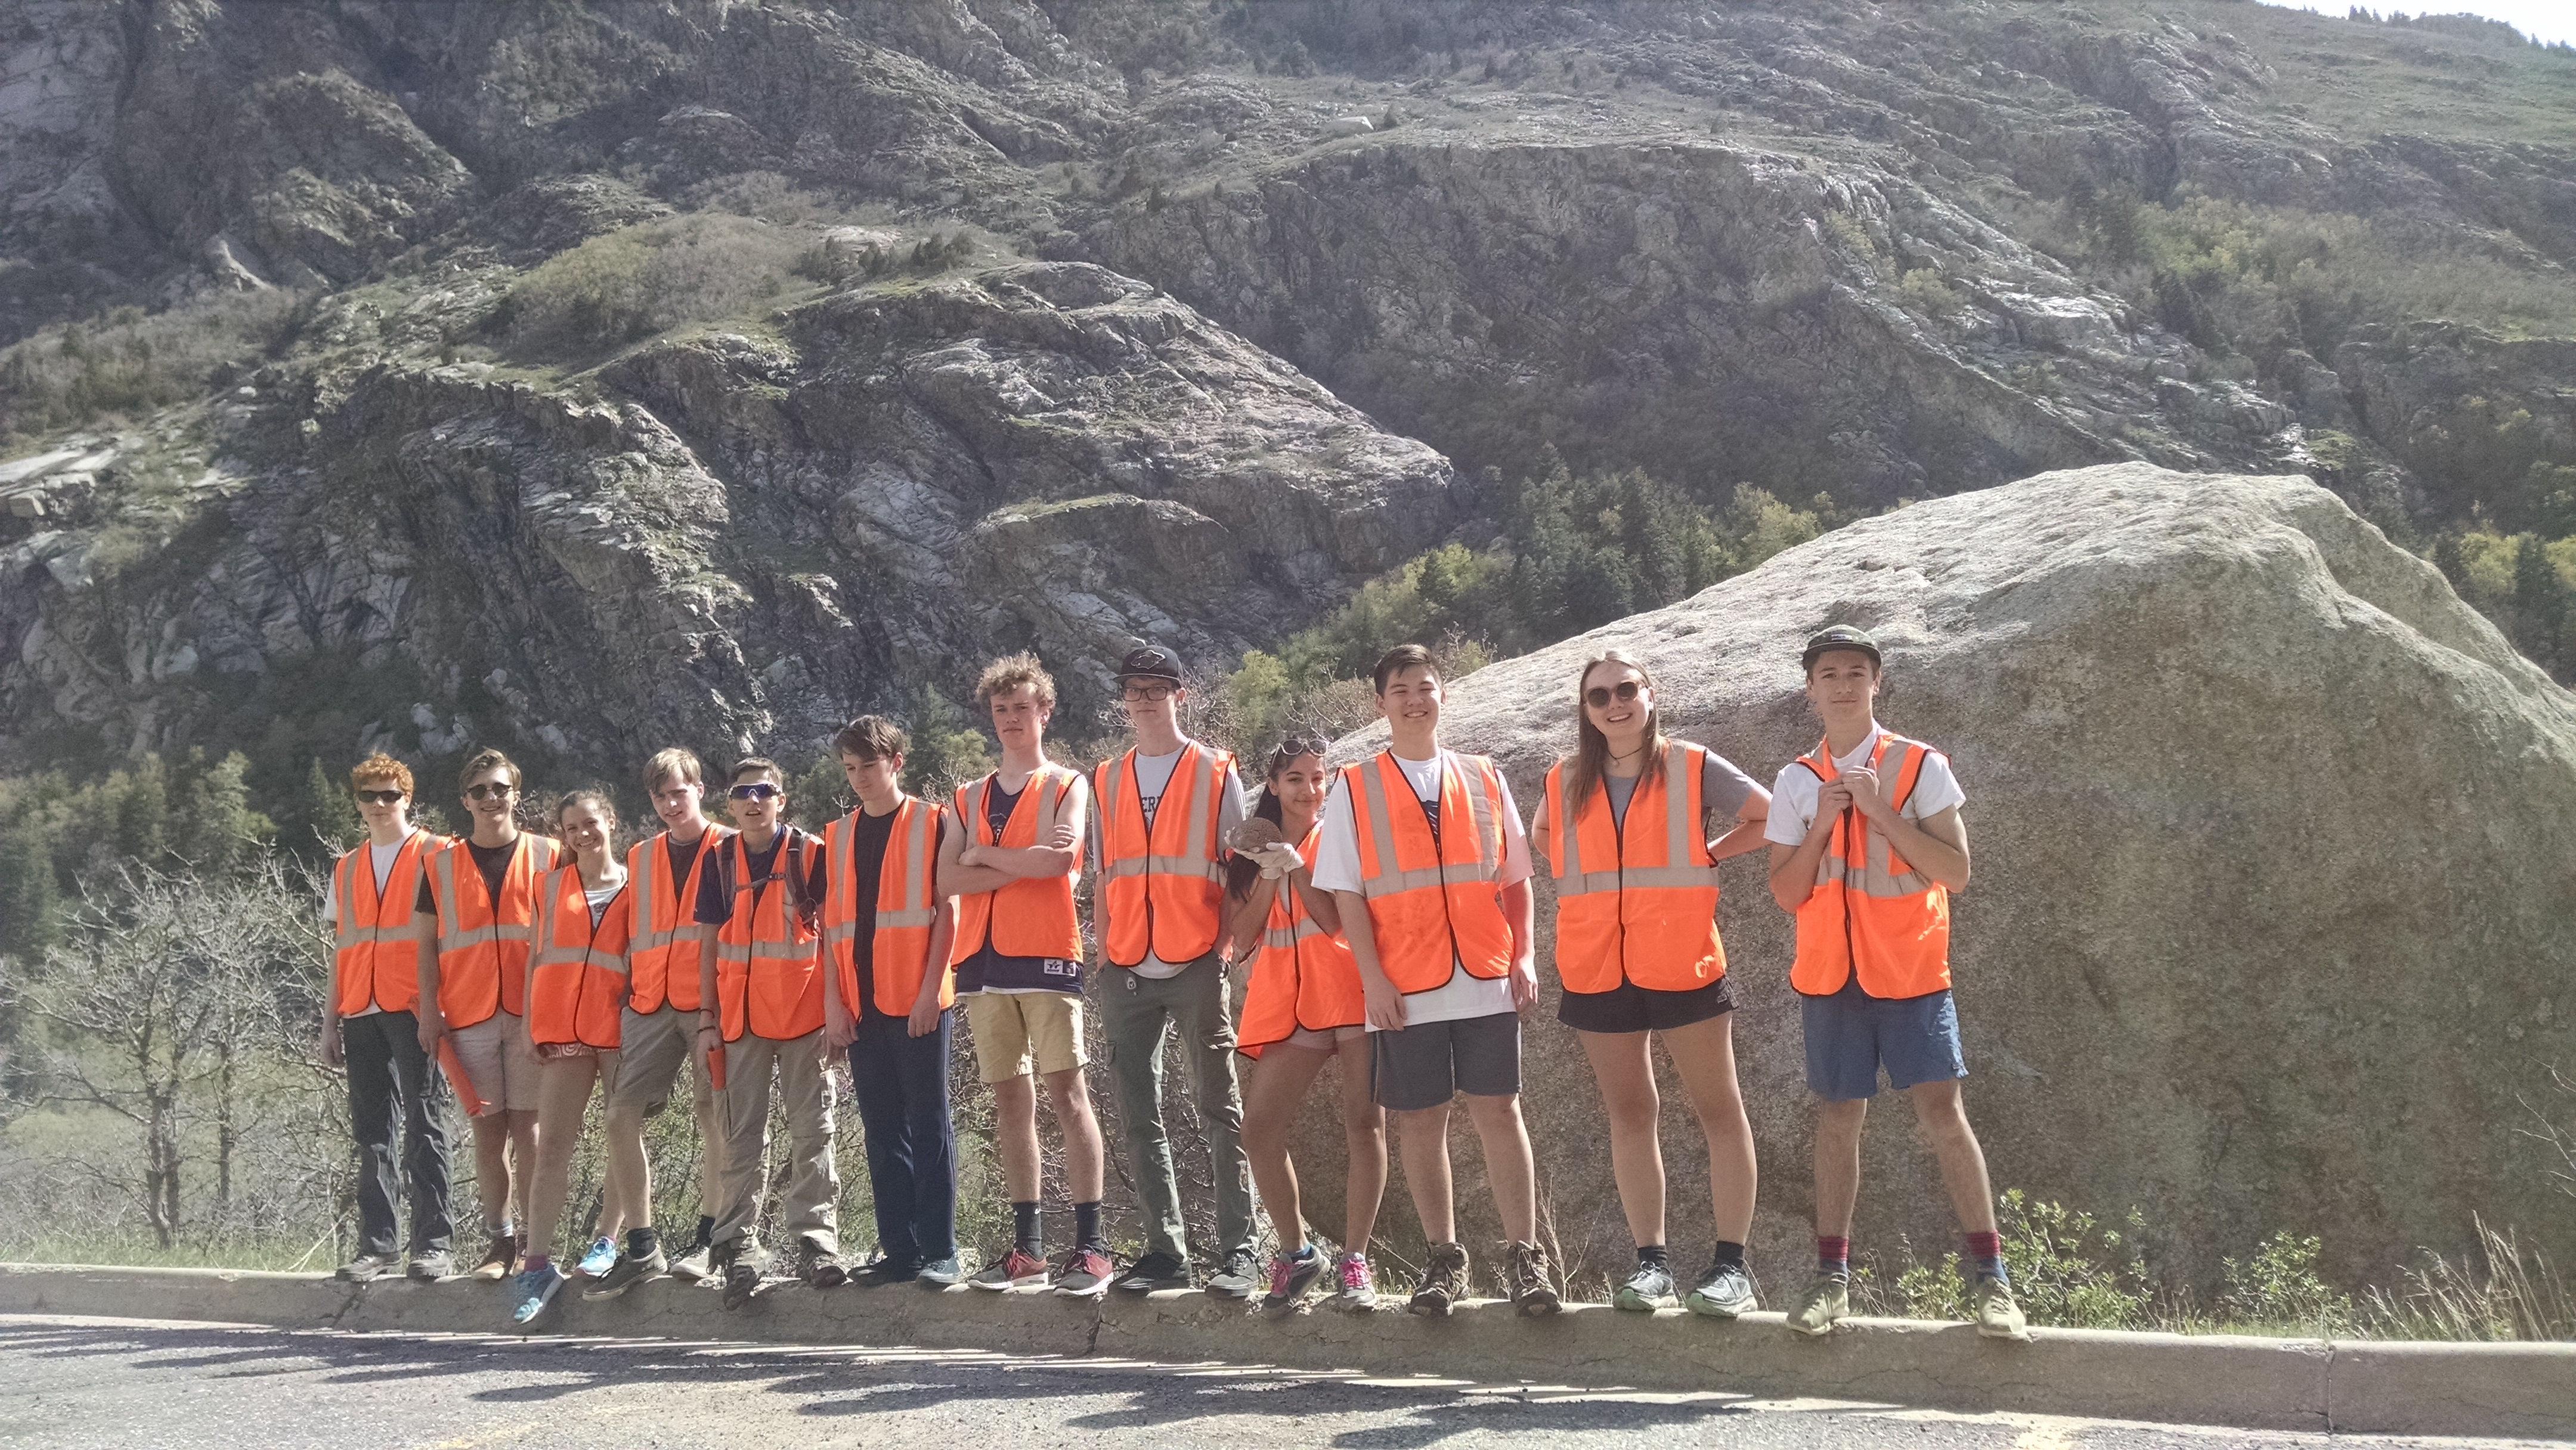 Waterford Students cleaning up Little Cottonwood Canyon